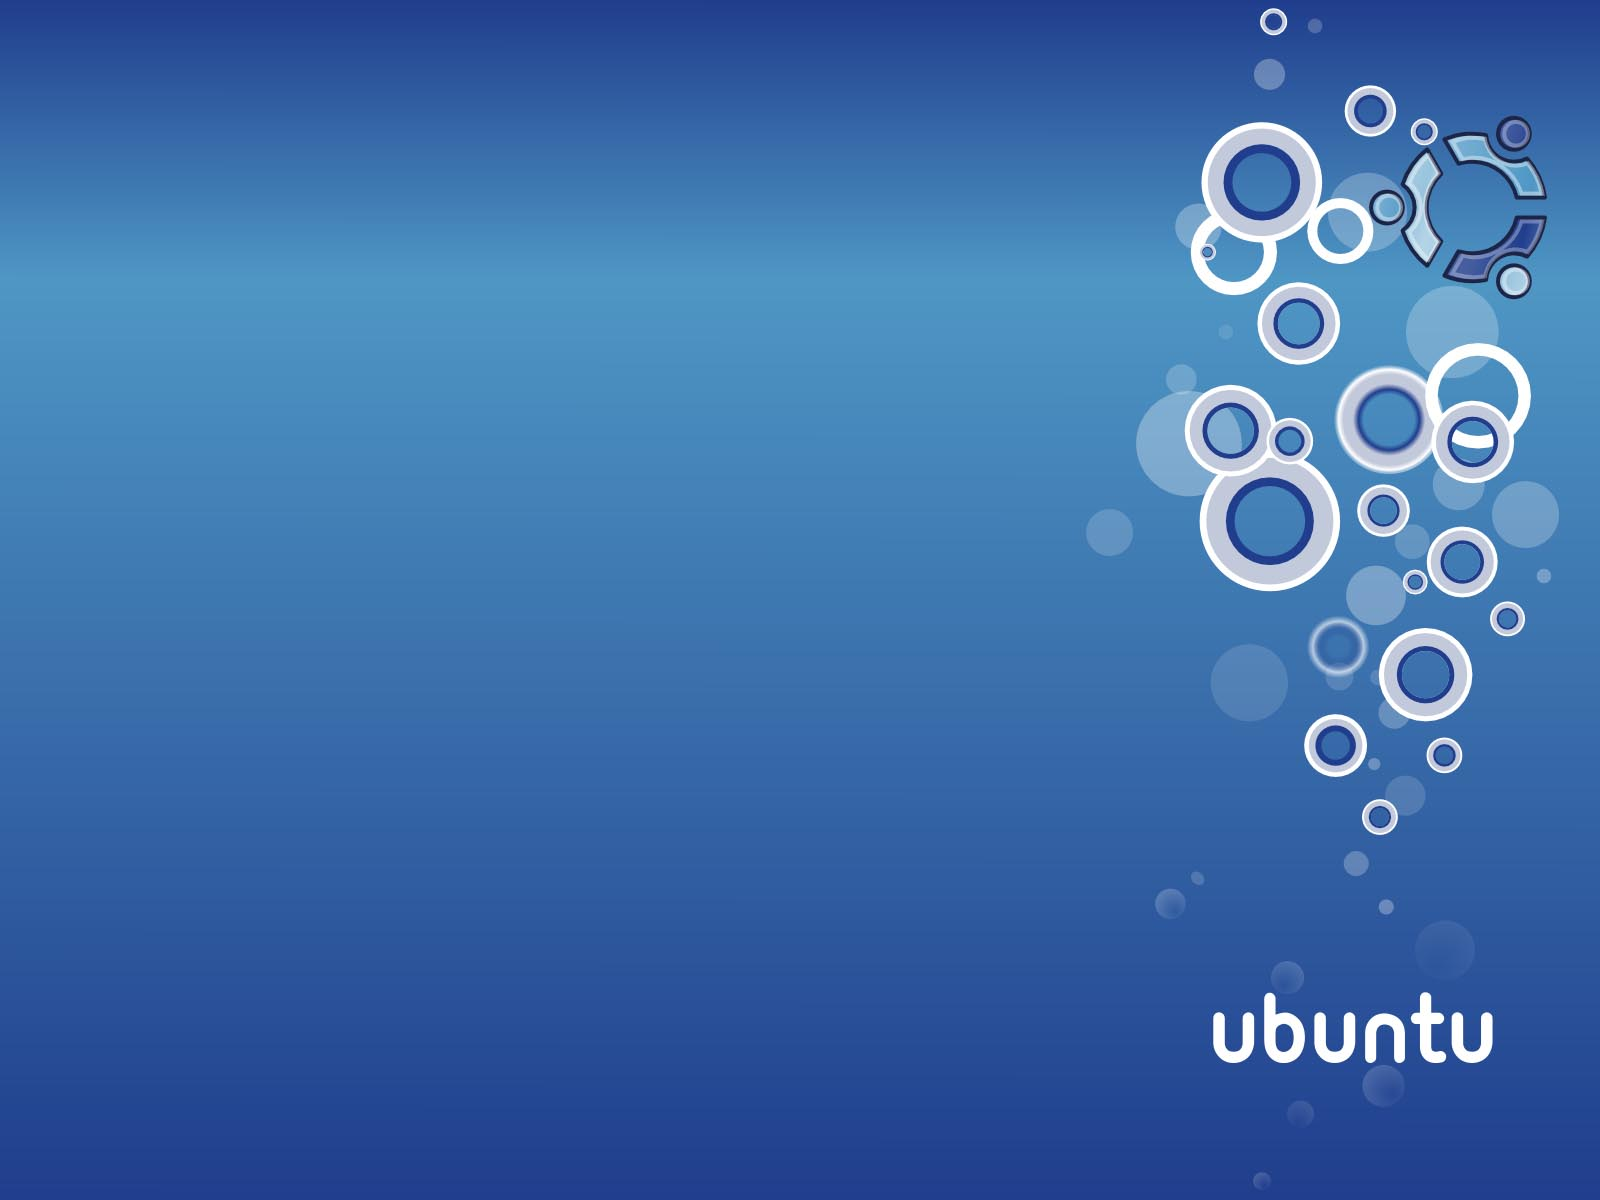 ubuntu desktop wallpaper   wwwhigh definition wallpapercom 1600x1200